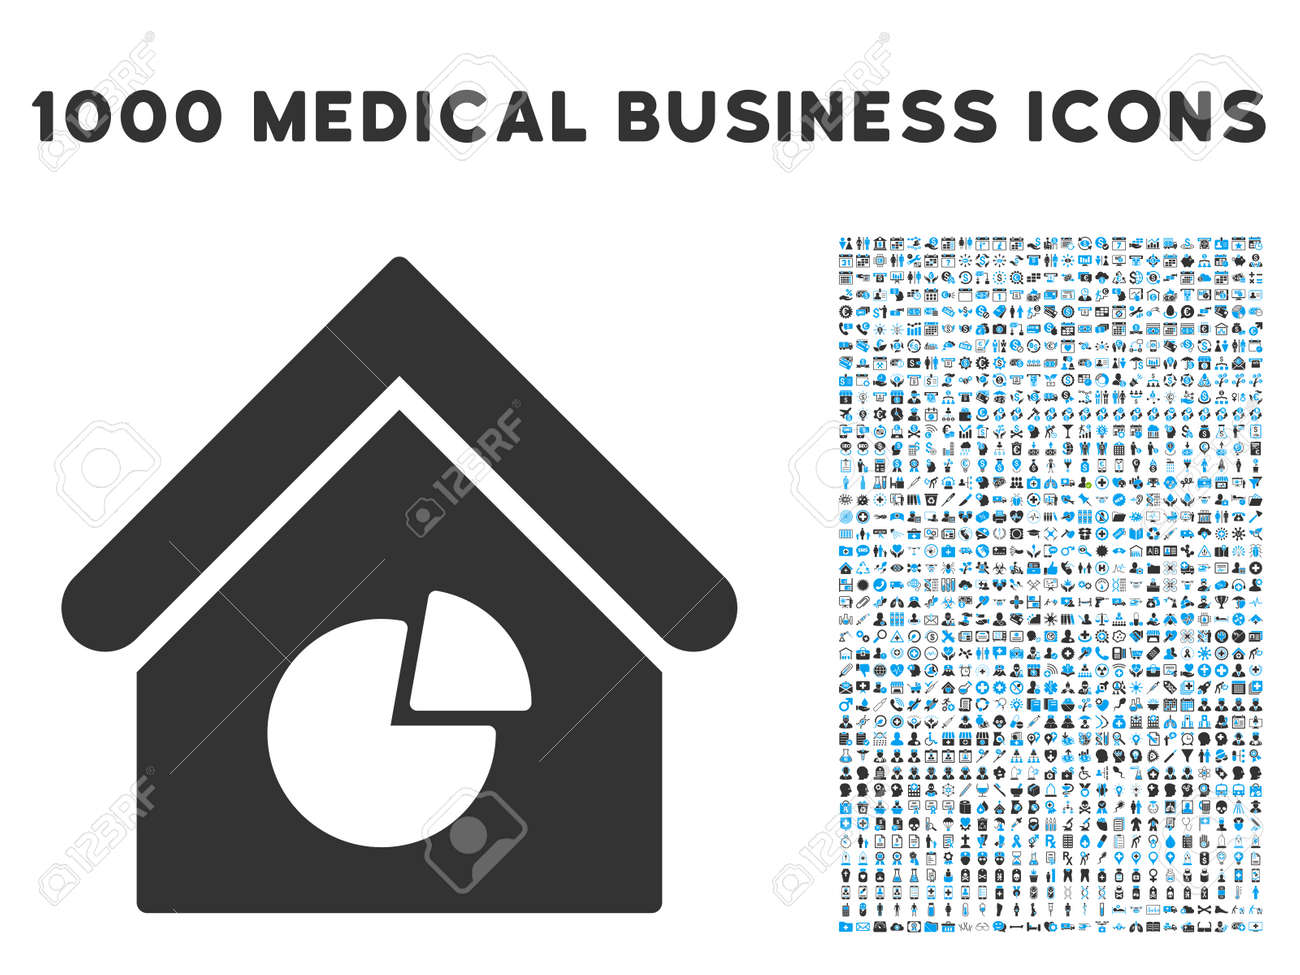 hight resolution of realty pie chart icon with 1000 medical commerce gray and blue glyph design elements clipart